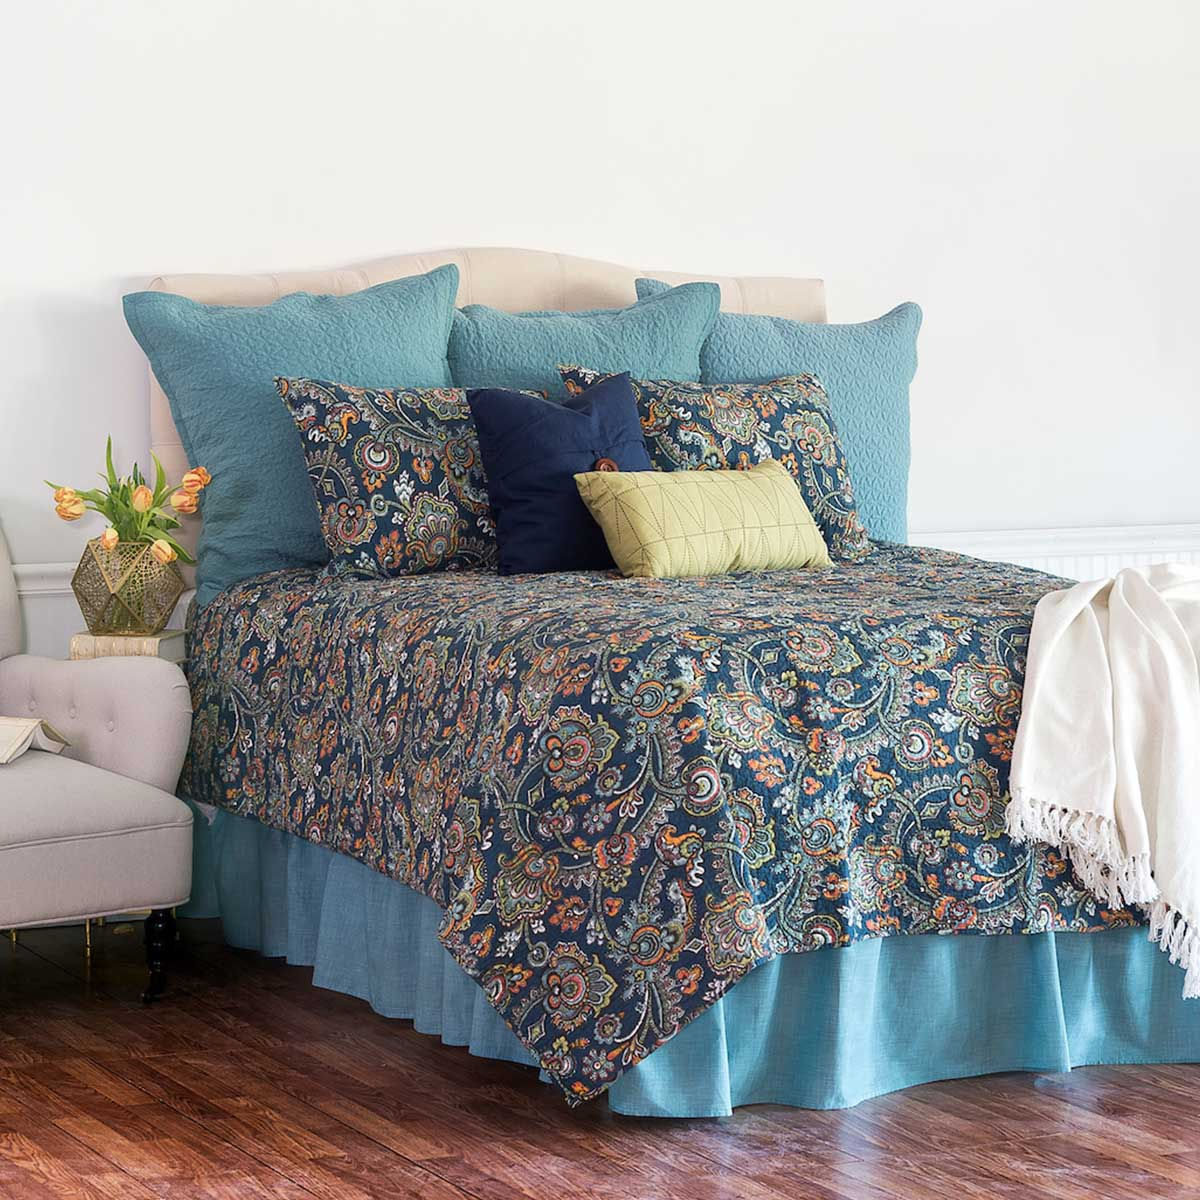 C&F Home_Everyday_Bedding_Quilts_Aug17.jpg